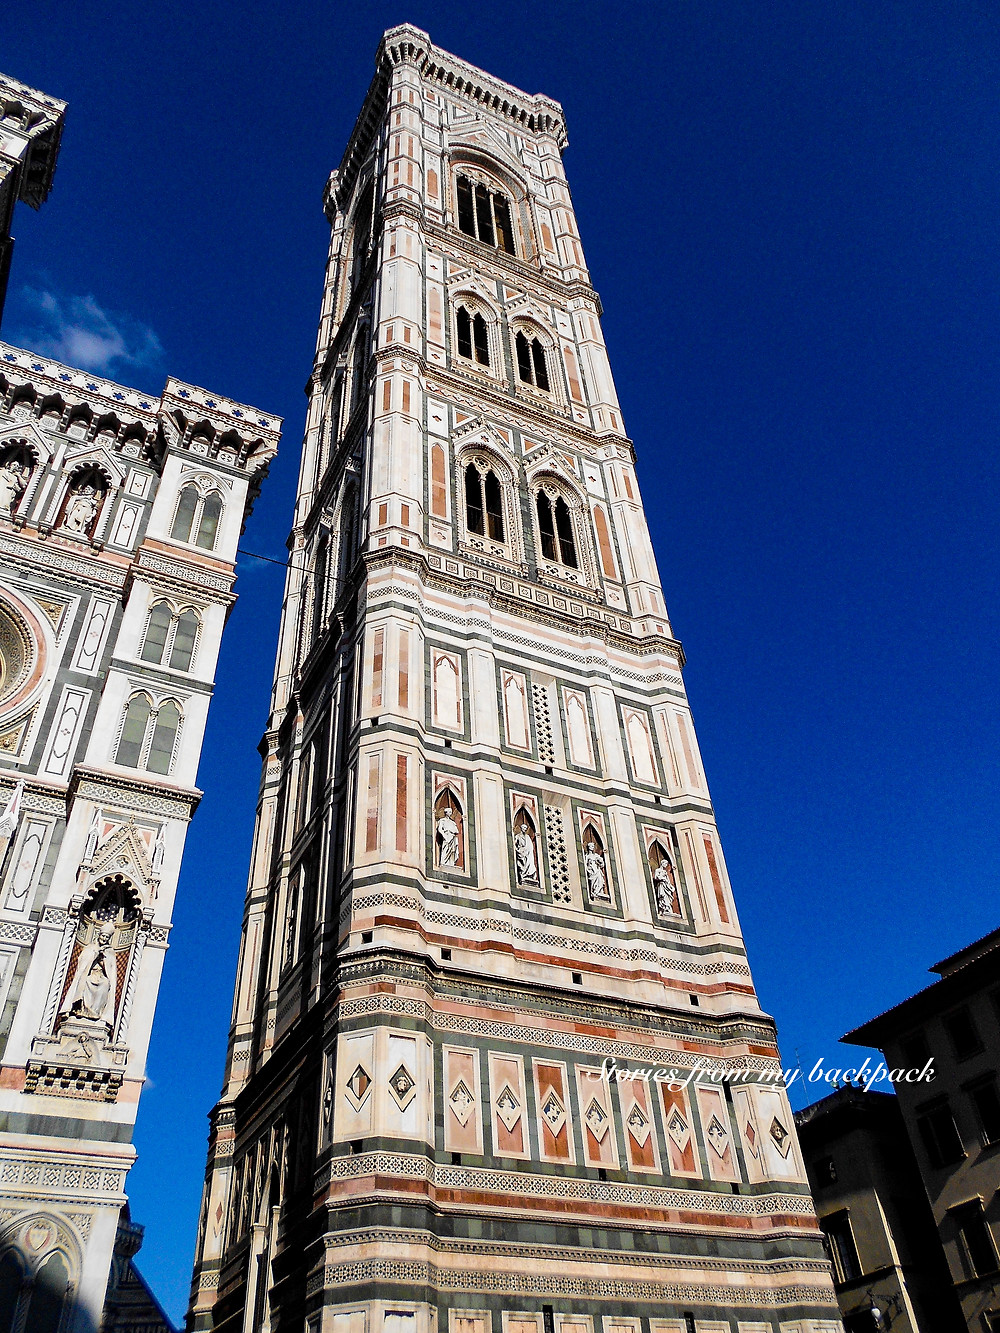 Giotto's Campanile, Ticket prices for Giotto's campanile, Bell tower entrance, Giotto's campanile view, Florence, Things to do in Florence, Florence sightseeing, Florence architecture, Florence budget sights, best views in Florence